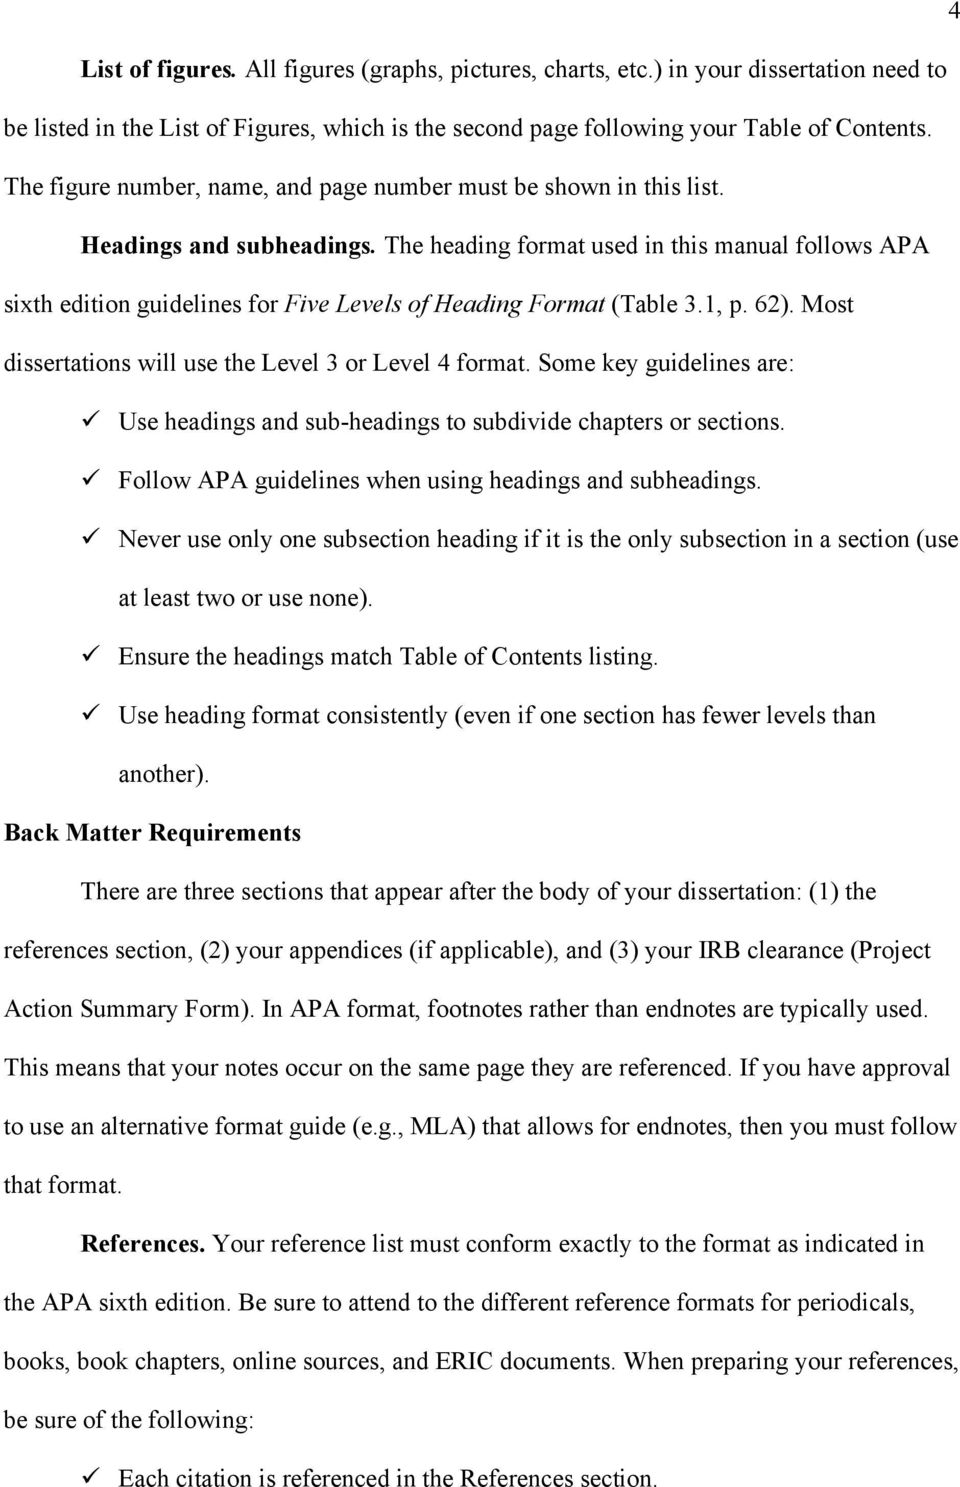 The heading format used in this manual follows APA sixth edition guidelines for Five Levels of Heading Format (Table 3.1, p. 62). Most dissertations will use the Level 3 or Level 4 format.